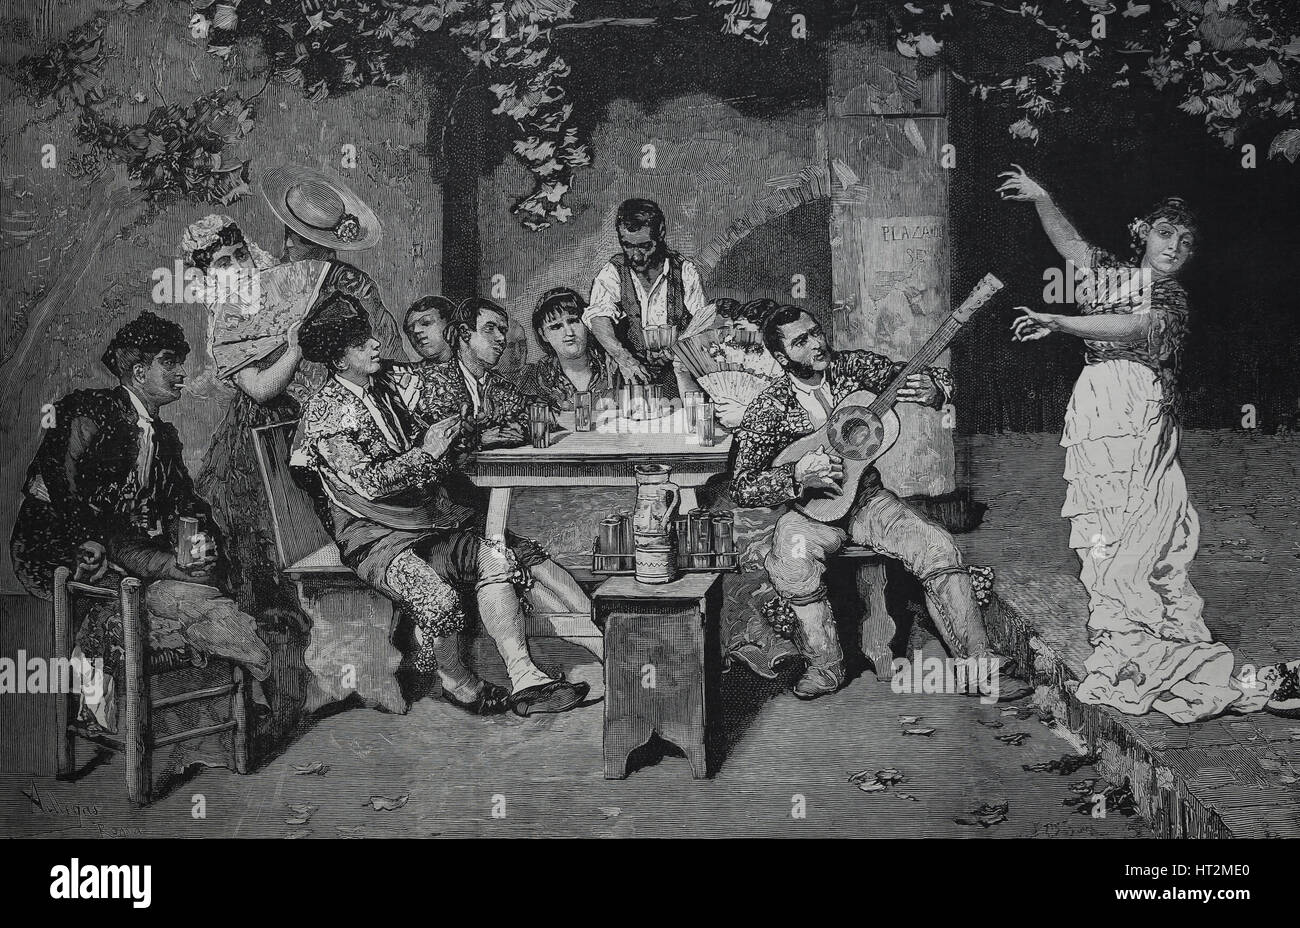 Spain. Bullfighter party. Drawing of a painting by Jose Villegas. The Spanish and American Illustratio, 1882, Spain. - Stock Image